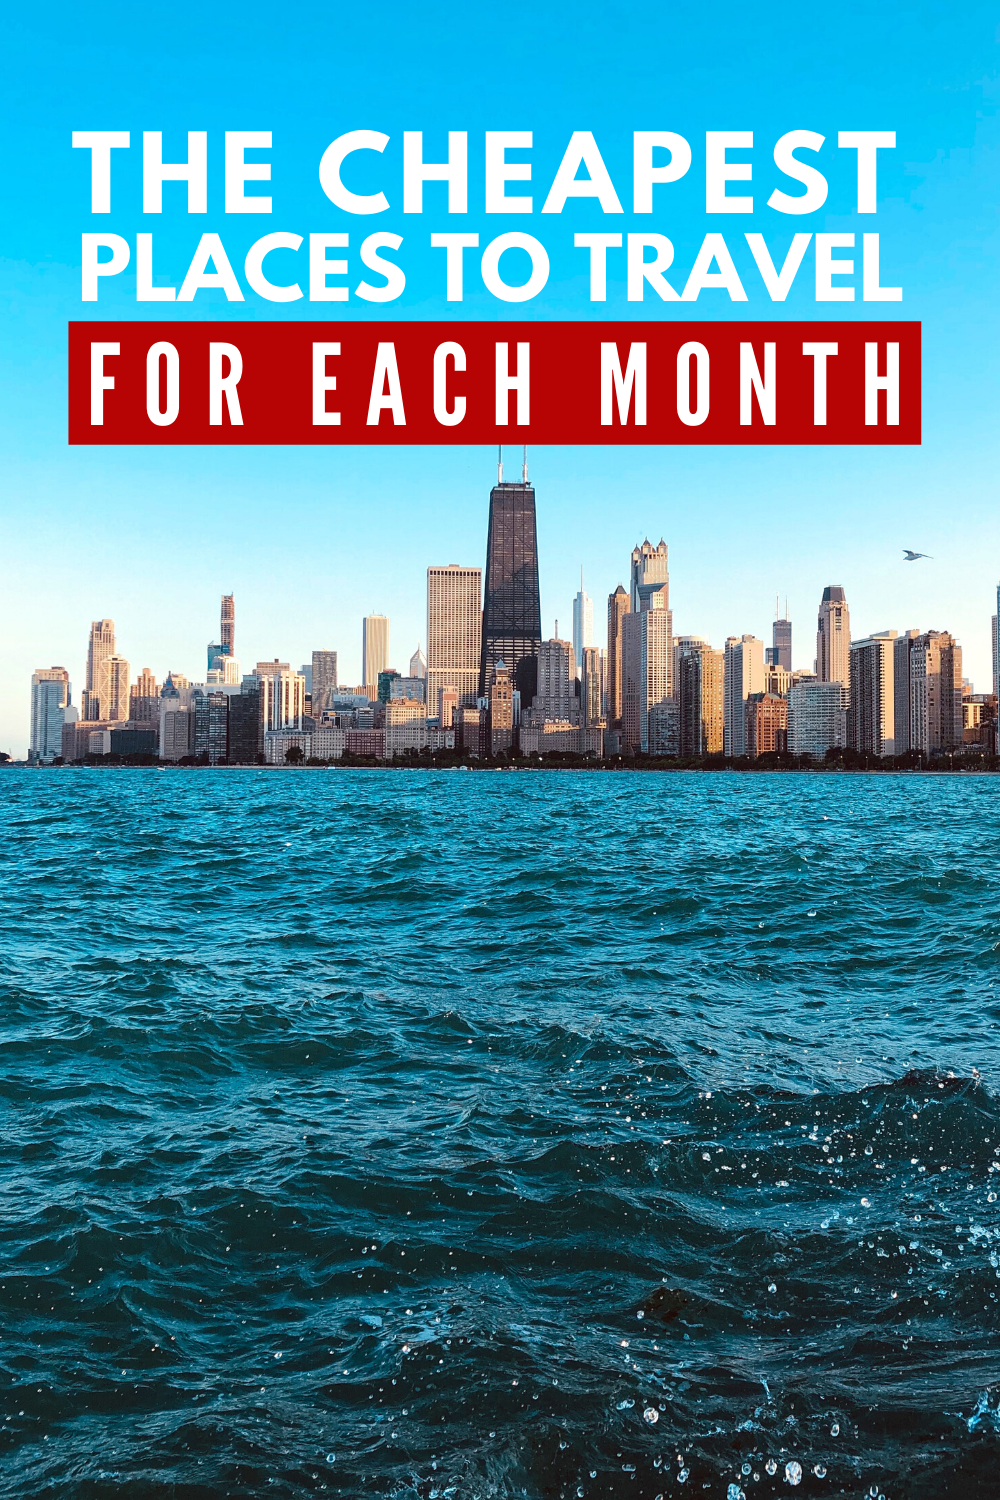 Here, your month-by-month guide for great vacation deals. Budget breakdowns for the cheapest spots in the world. Check them out and start planning your trip! |Cheap places to travel| the cheapest places to travel for each month of the year| Budget travel guide #budgettraveltips #budgettravelguide #cheapdestinations #budgetgetaways